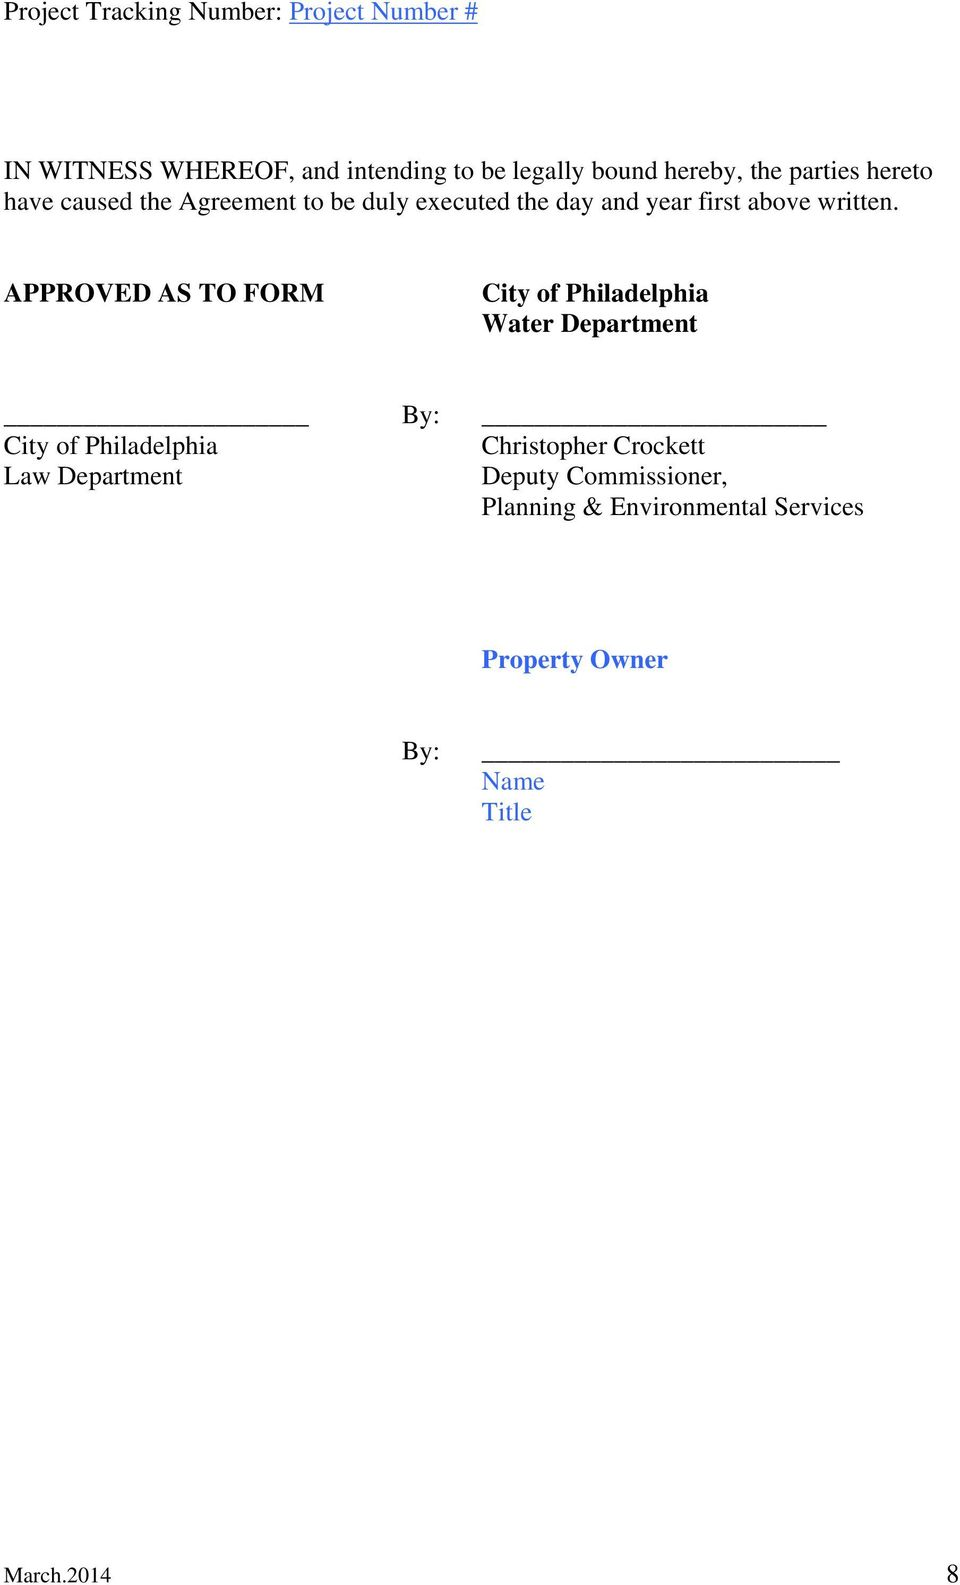 APPROVED AS TO FORM City of Philadelphia Water Department By: City of Philadelphia Christopher